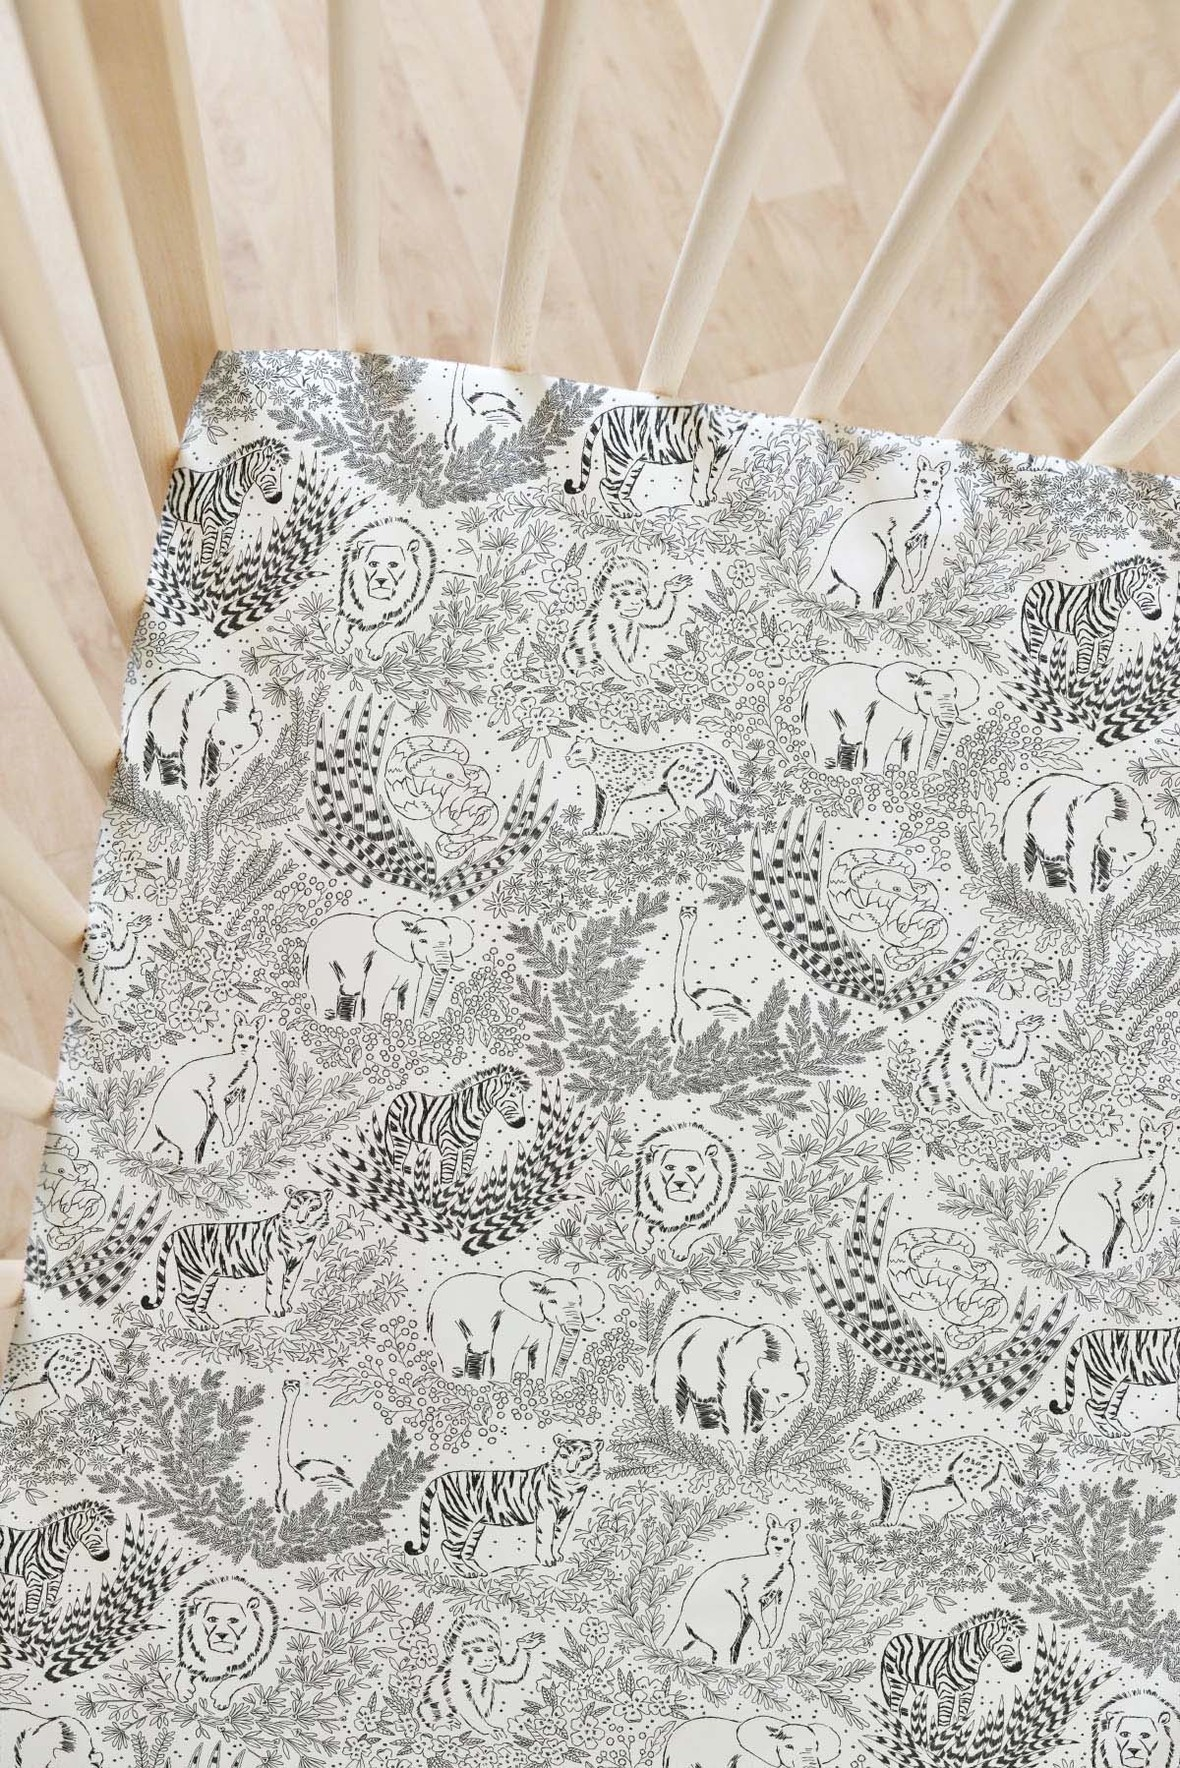 Zoo Garden Fabric Crib Sheet in onyx